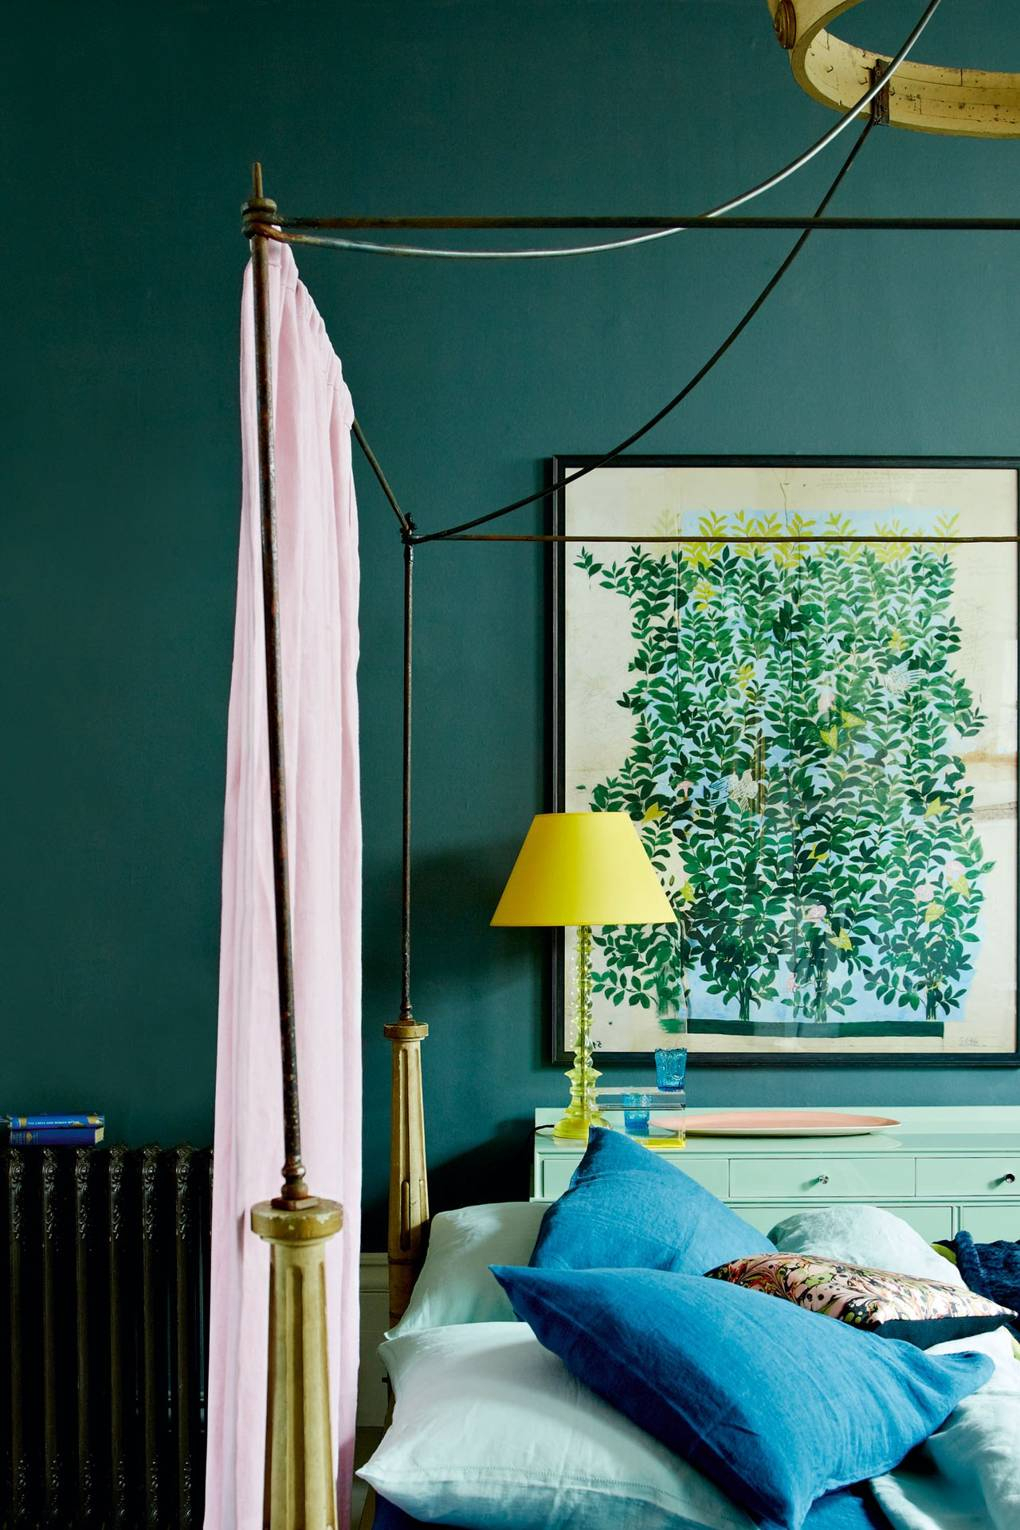 10 Stylish Green And Blue Room Ideas teal blue bedroom wall paint colour ideas house garden